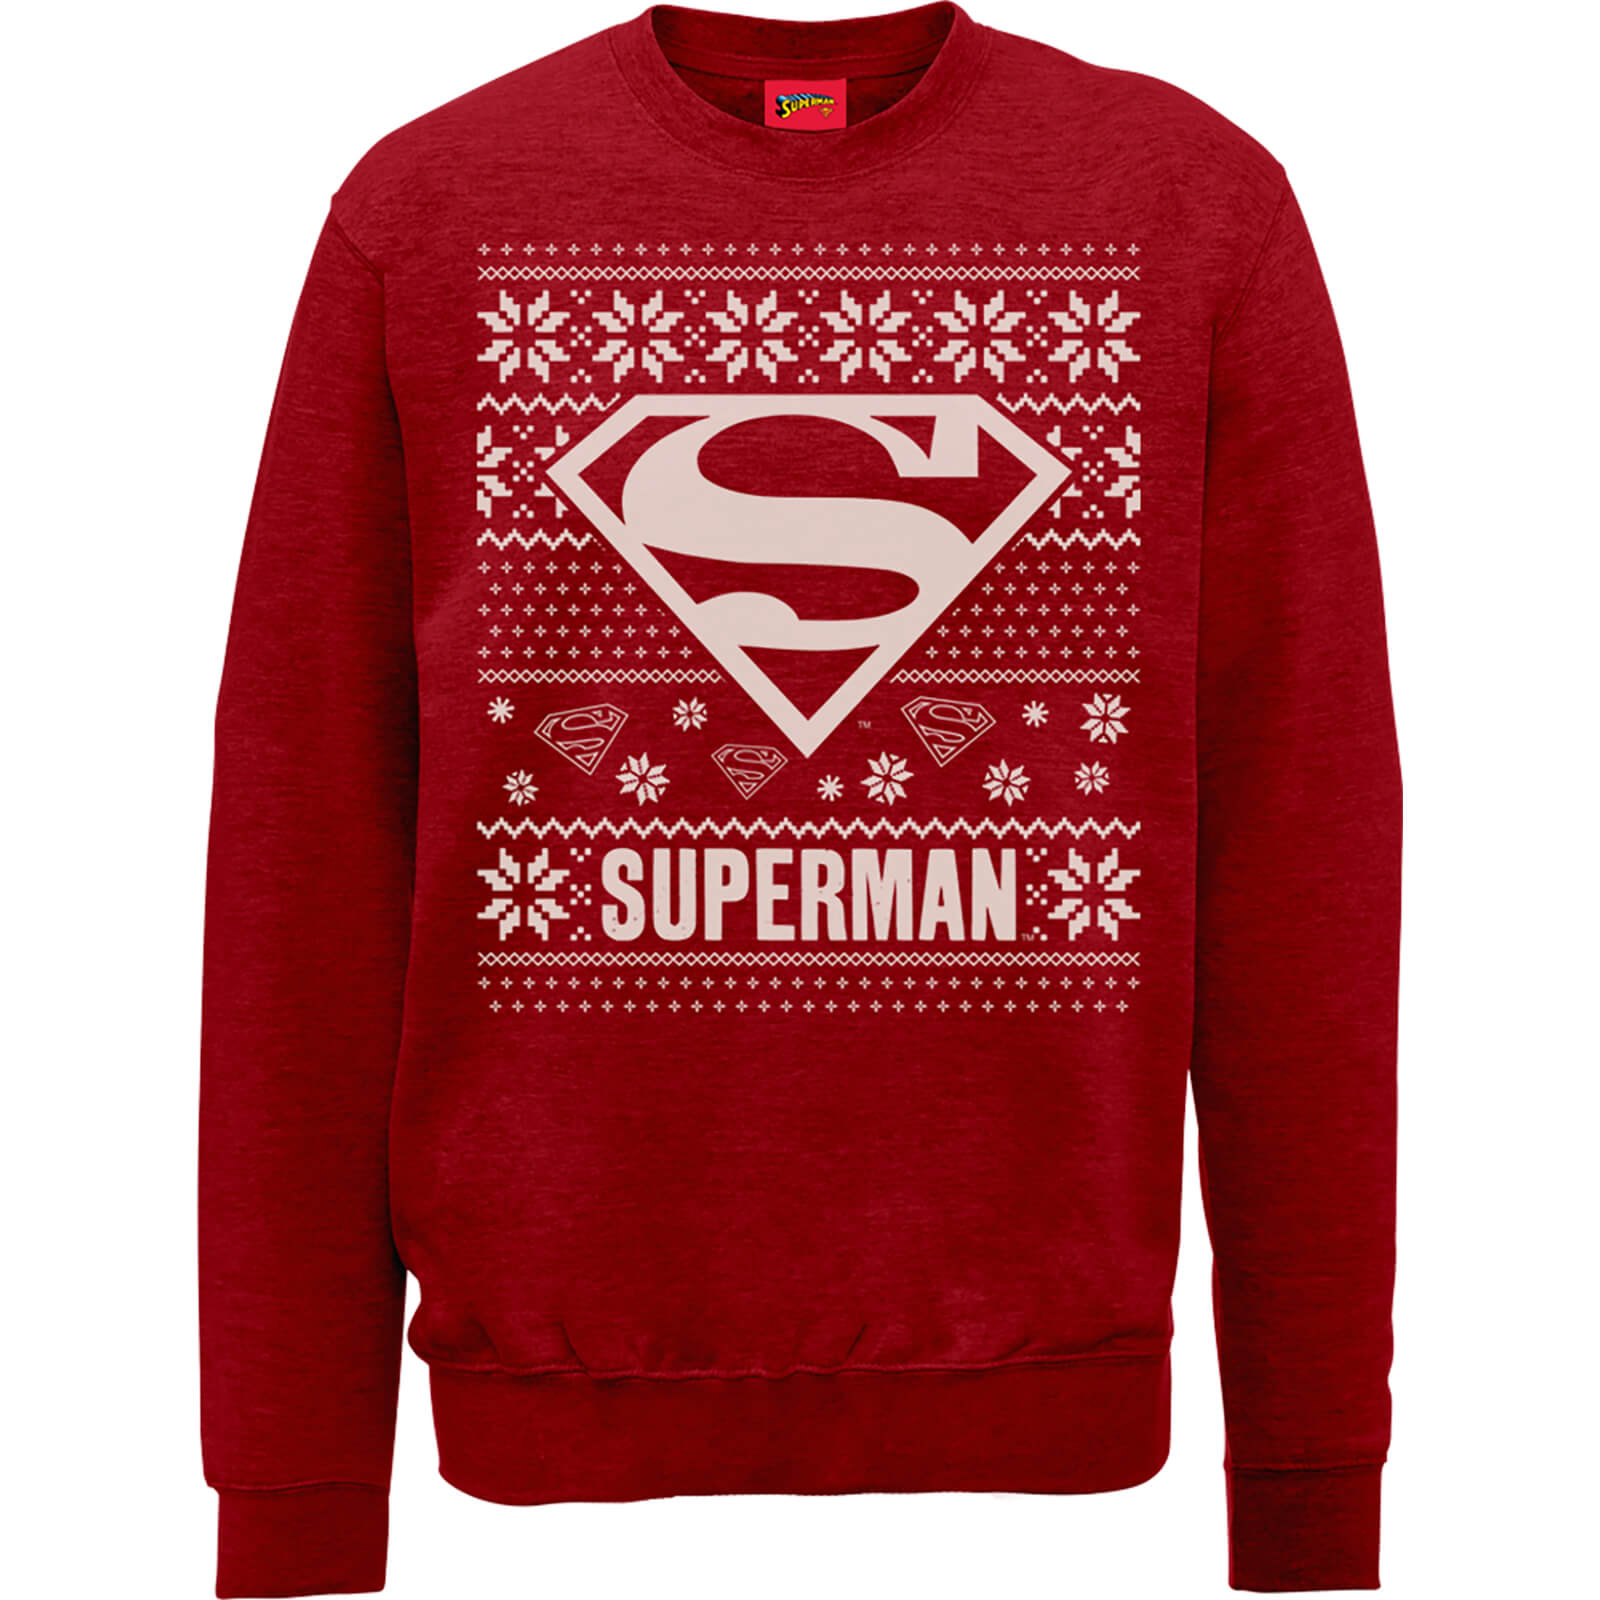 Kersttrui 68.Dc Superman Christmas Knit Logo Red Christmas Sweatshirt Clothing